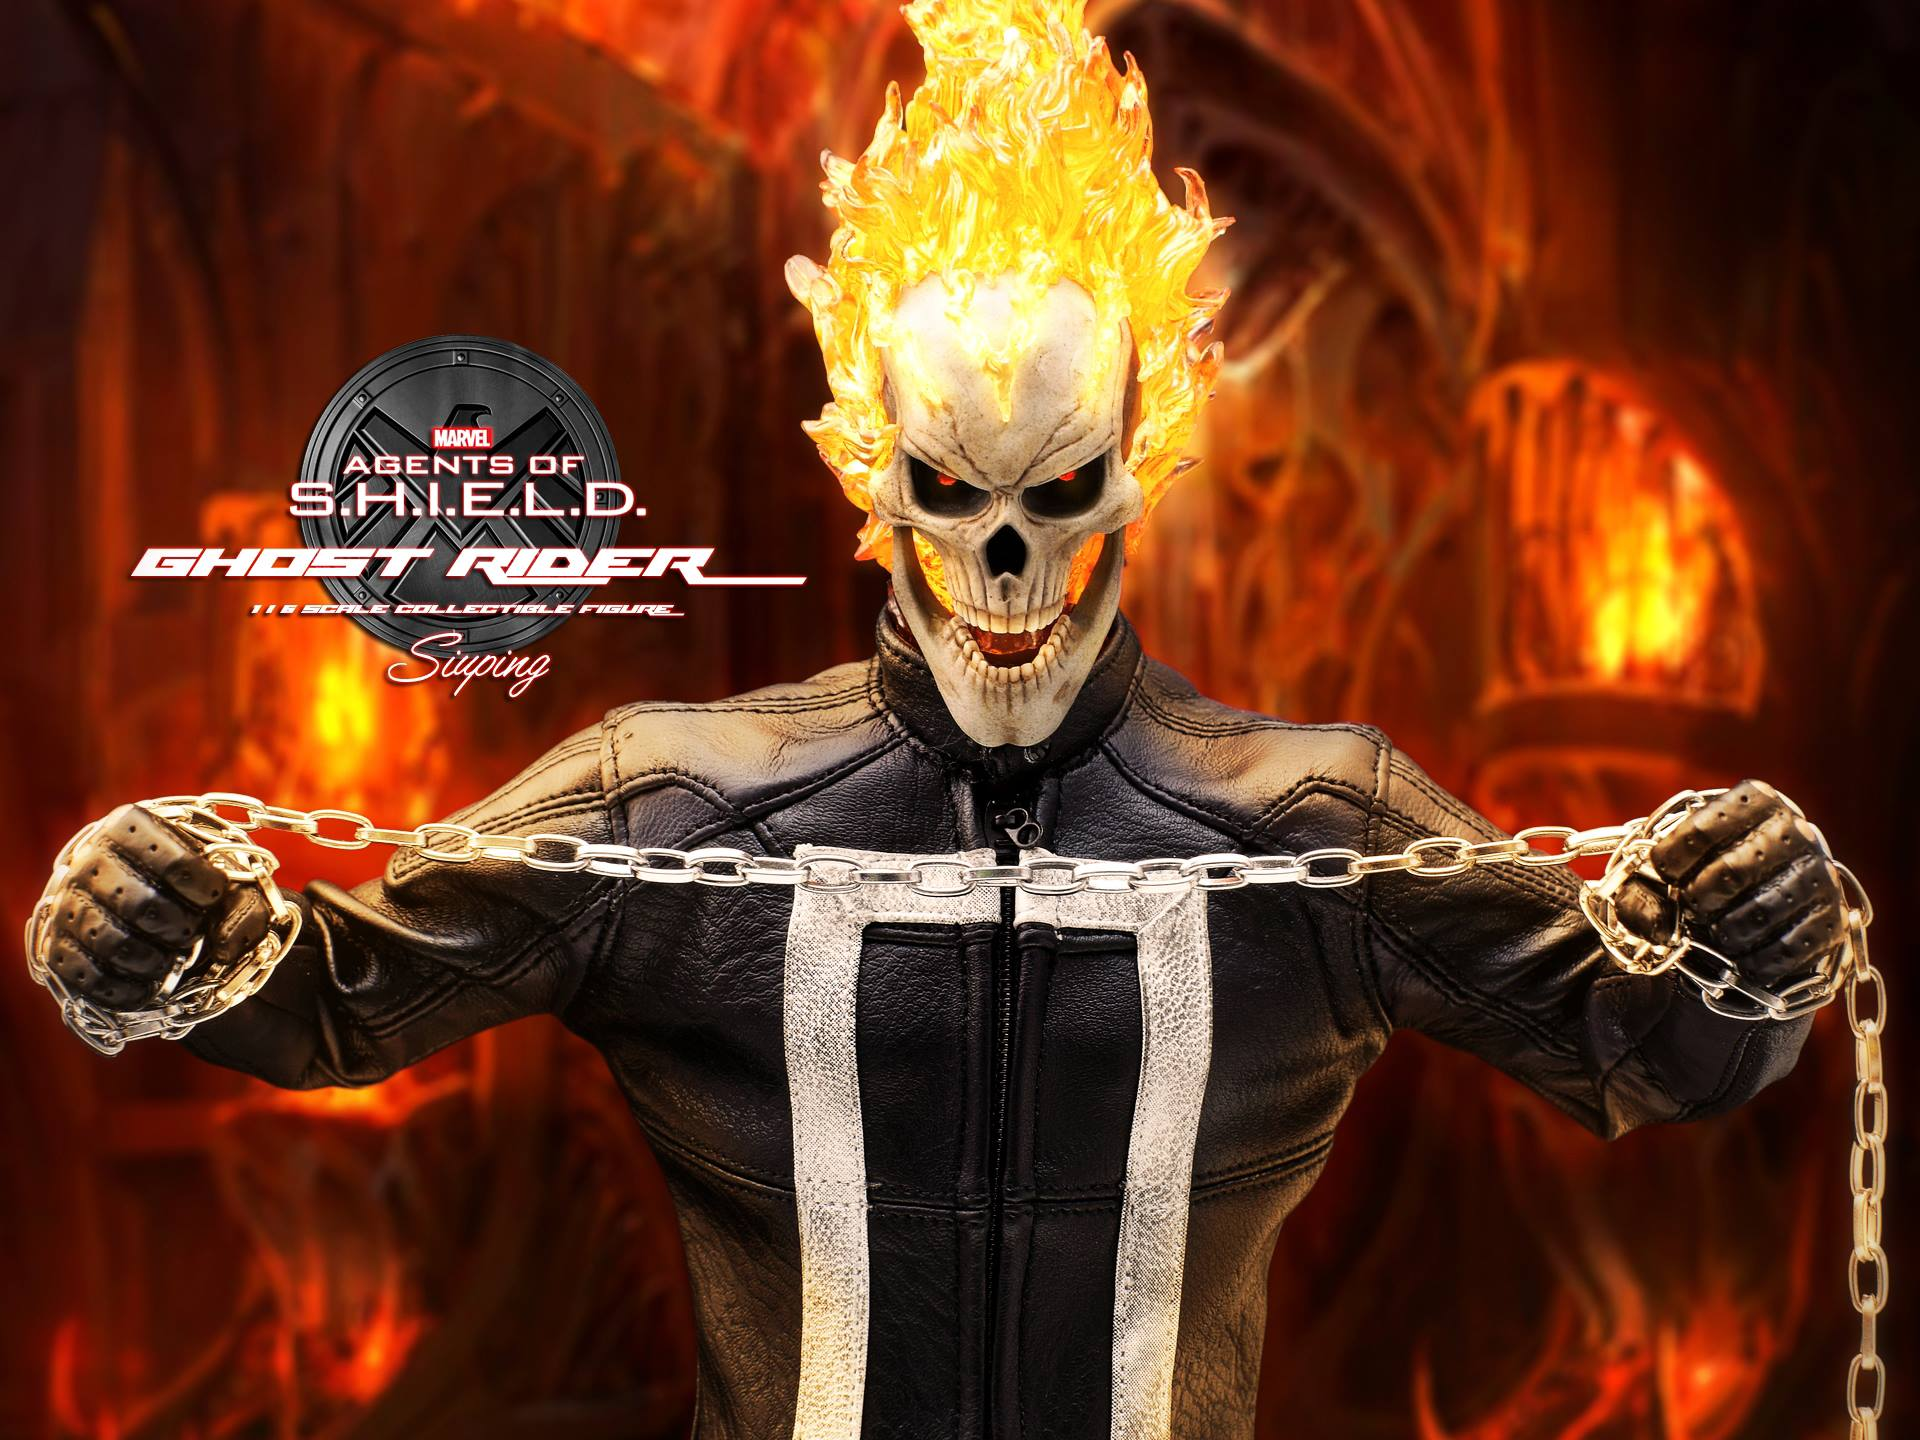 Hot Toys Agents Of S H I E L D Ghost Rider Final Promo Images